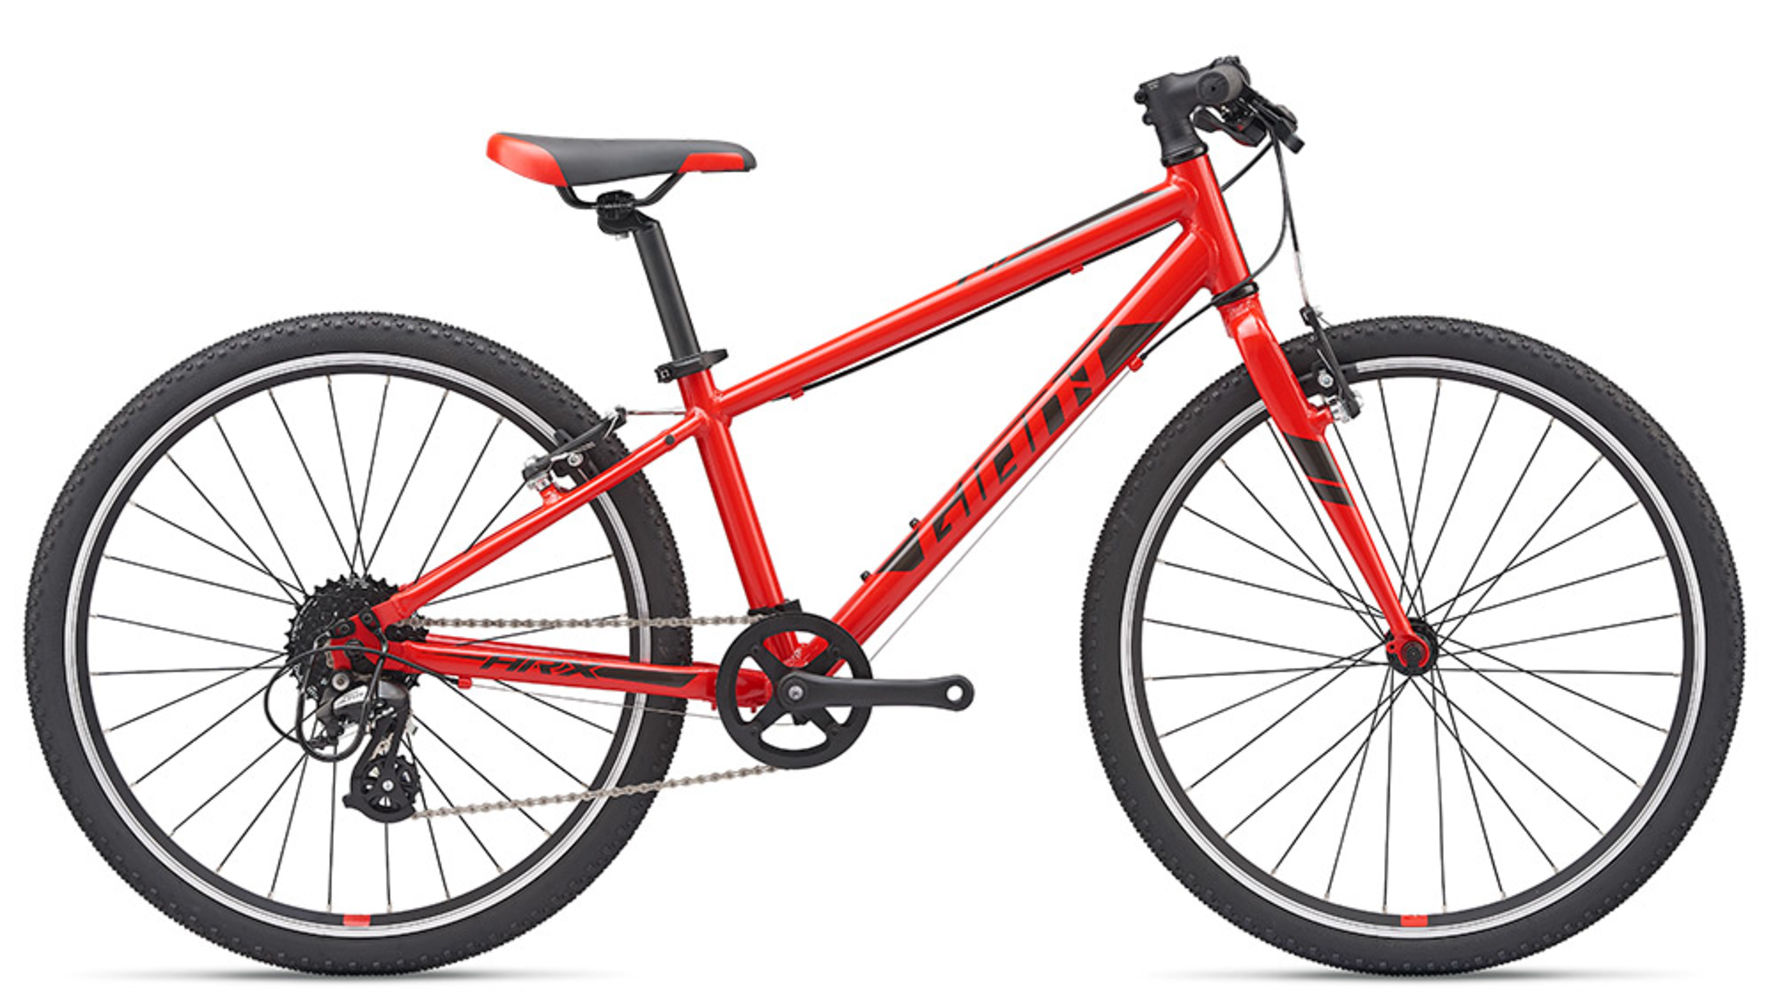 2019 Giant Arx 24 Childs Bike In Red 163 325 00